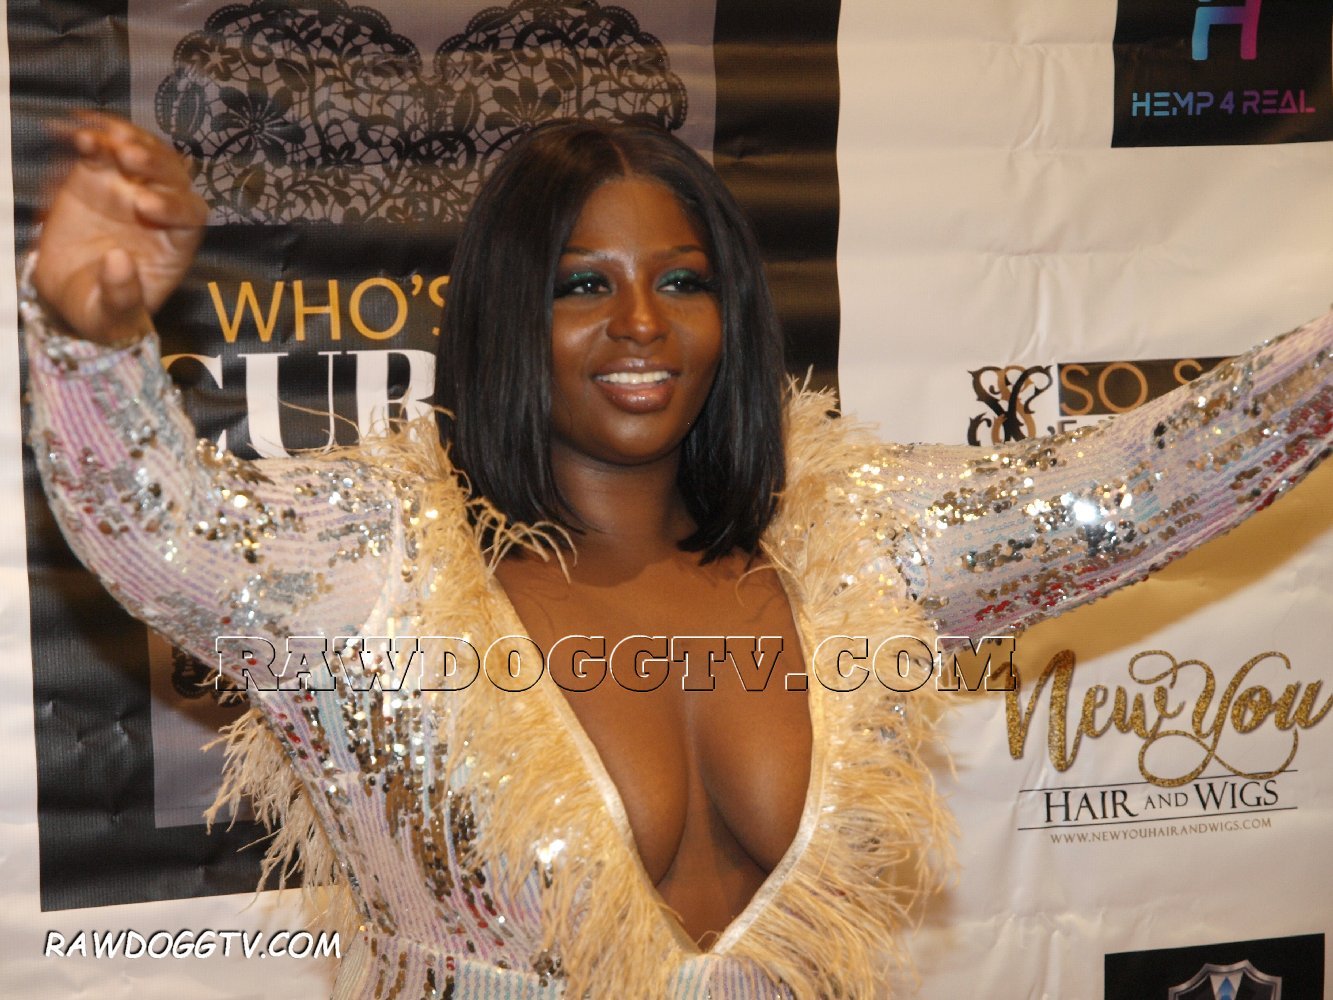 Whos Got Curves REALITY TV SHOW of Atlanta Photos HOLLYWOOD SOUTH PRESENTS httpsrawdoggtv (5)